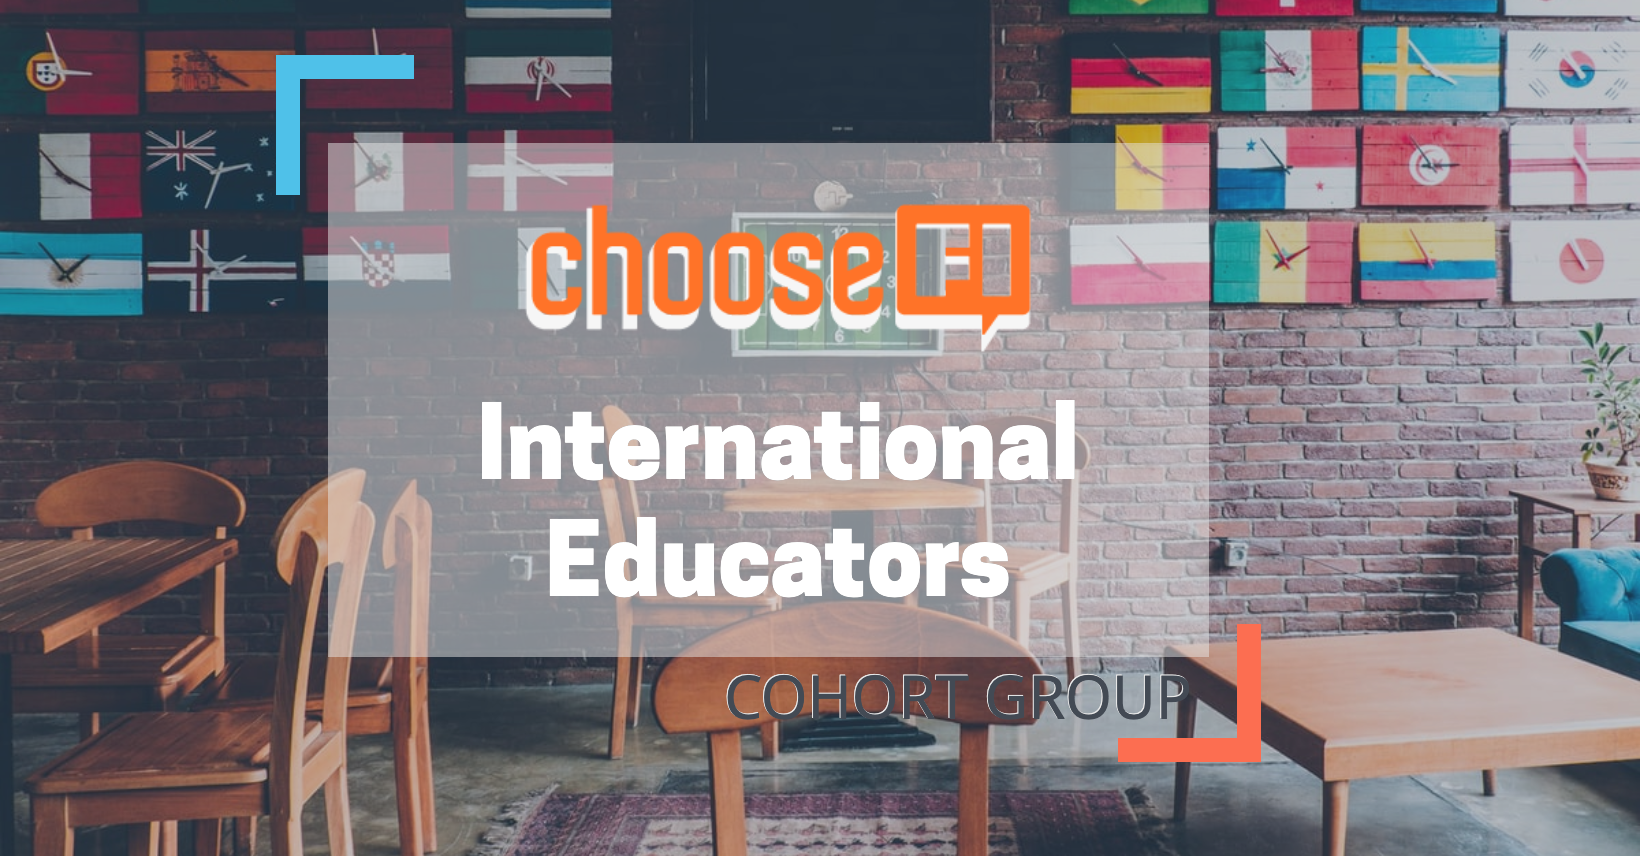 An image related to the International Educators